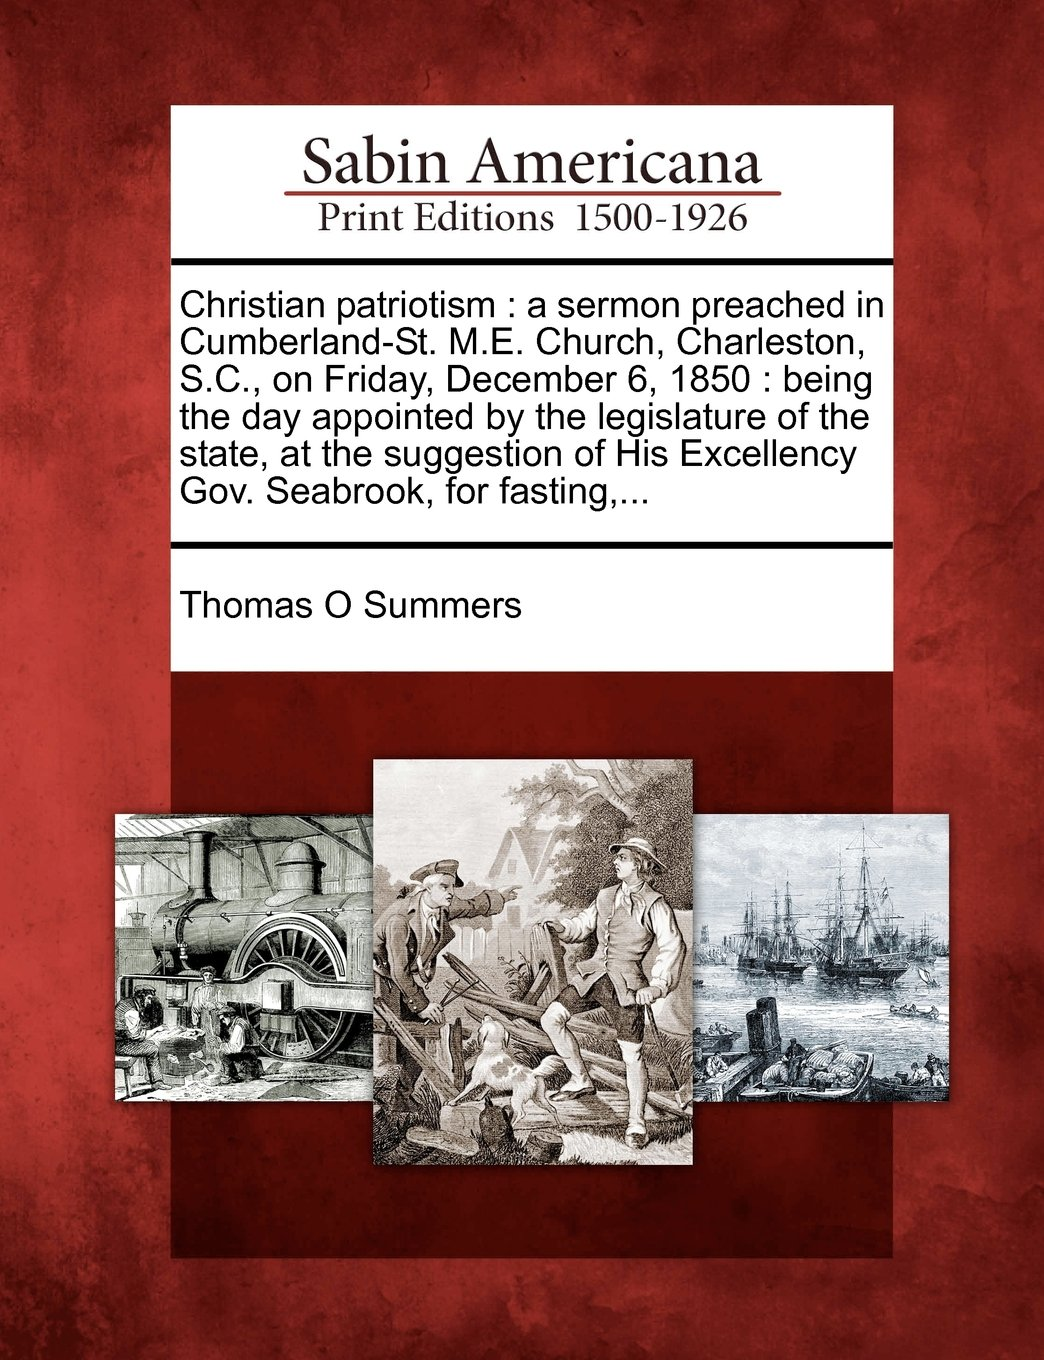 Christian patriotism: a sermon preached in Cumberland-St. M.E. Church, Charleston, S.C., on Friday, December 6, 1850 : being the day appointed by the ... His Excellency Gov. Seabrook, for fasting,... PDF